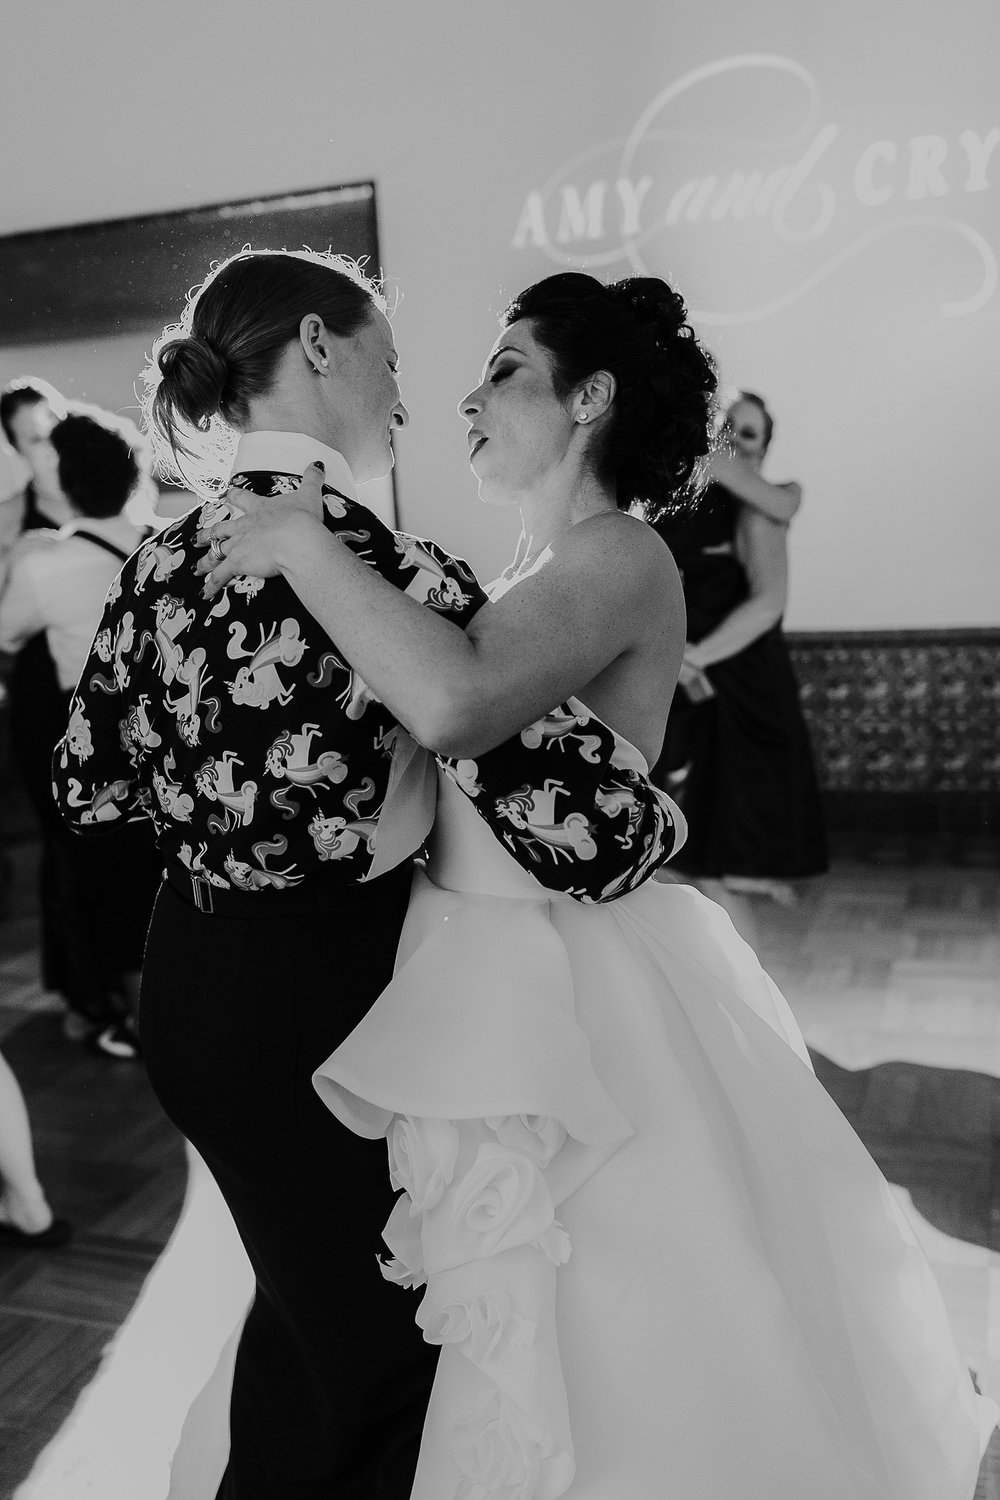 Alicia+lucia+photography+-+albuquerque+wedding+photographer+-+santa+fe+wedding+photography+-+new+mexico+wedding+photographer+-+los+poblanos+wedding+-+los+poblanos+fall+wedding+-+los+poblanos+october+wedding_0119.jpg